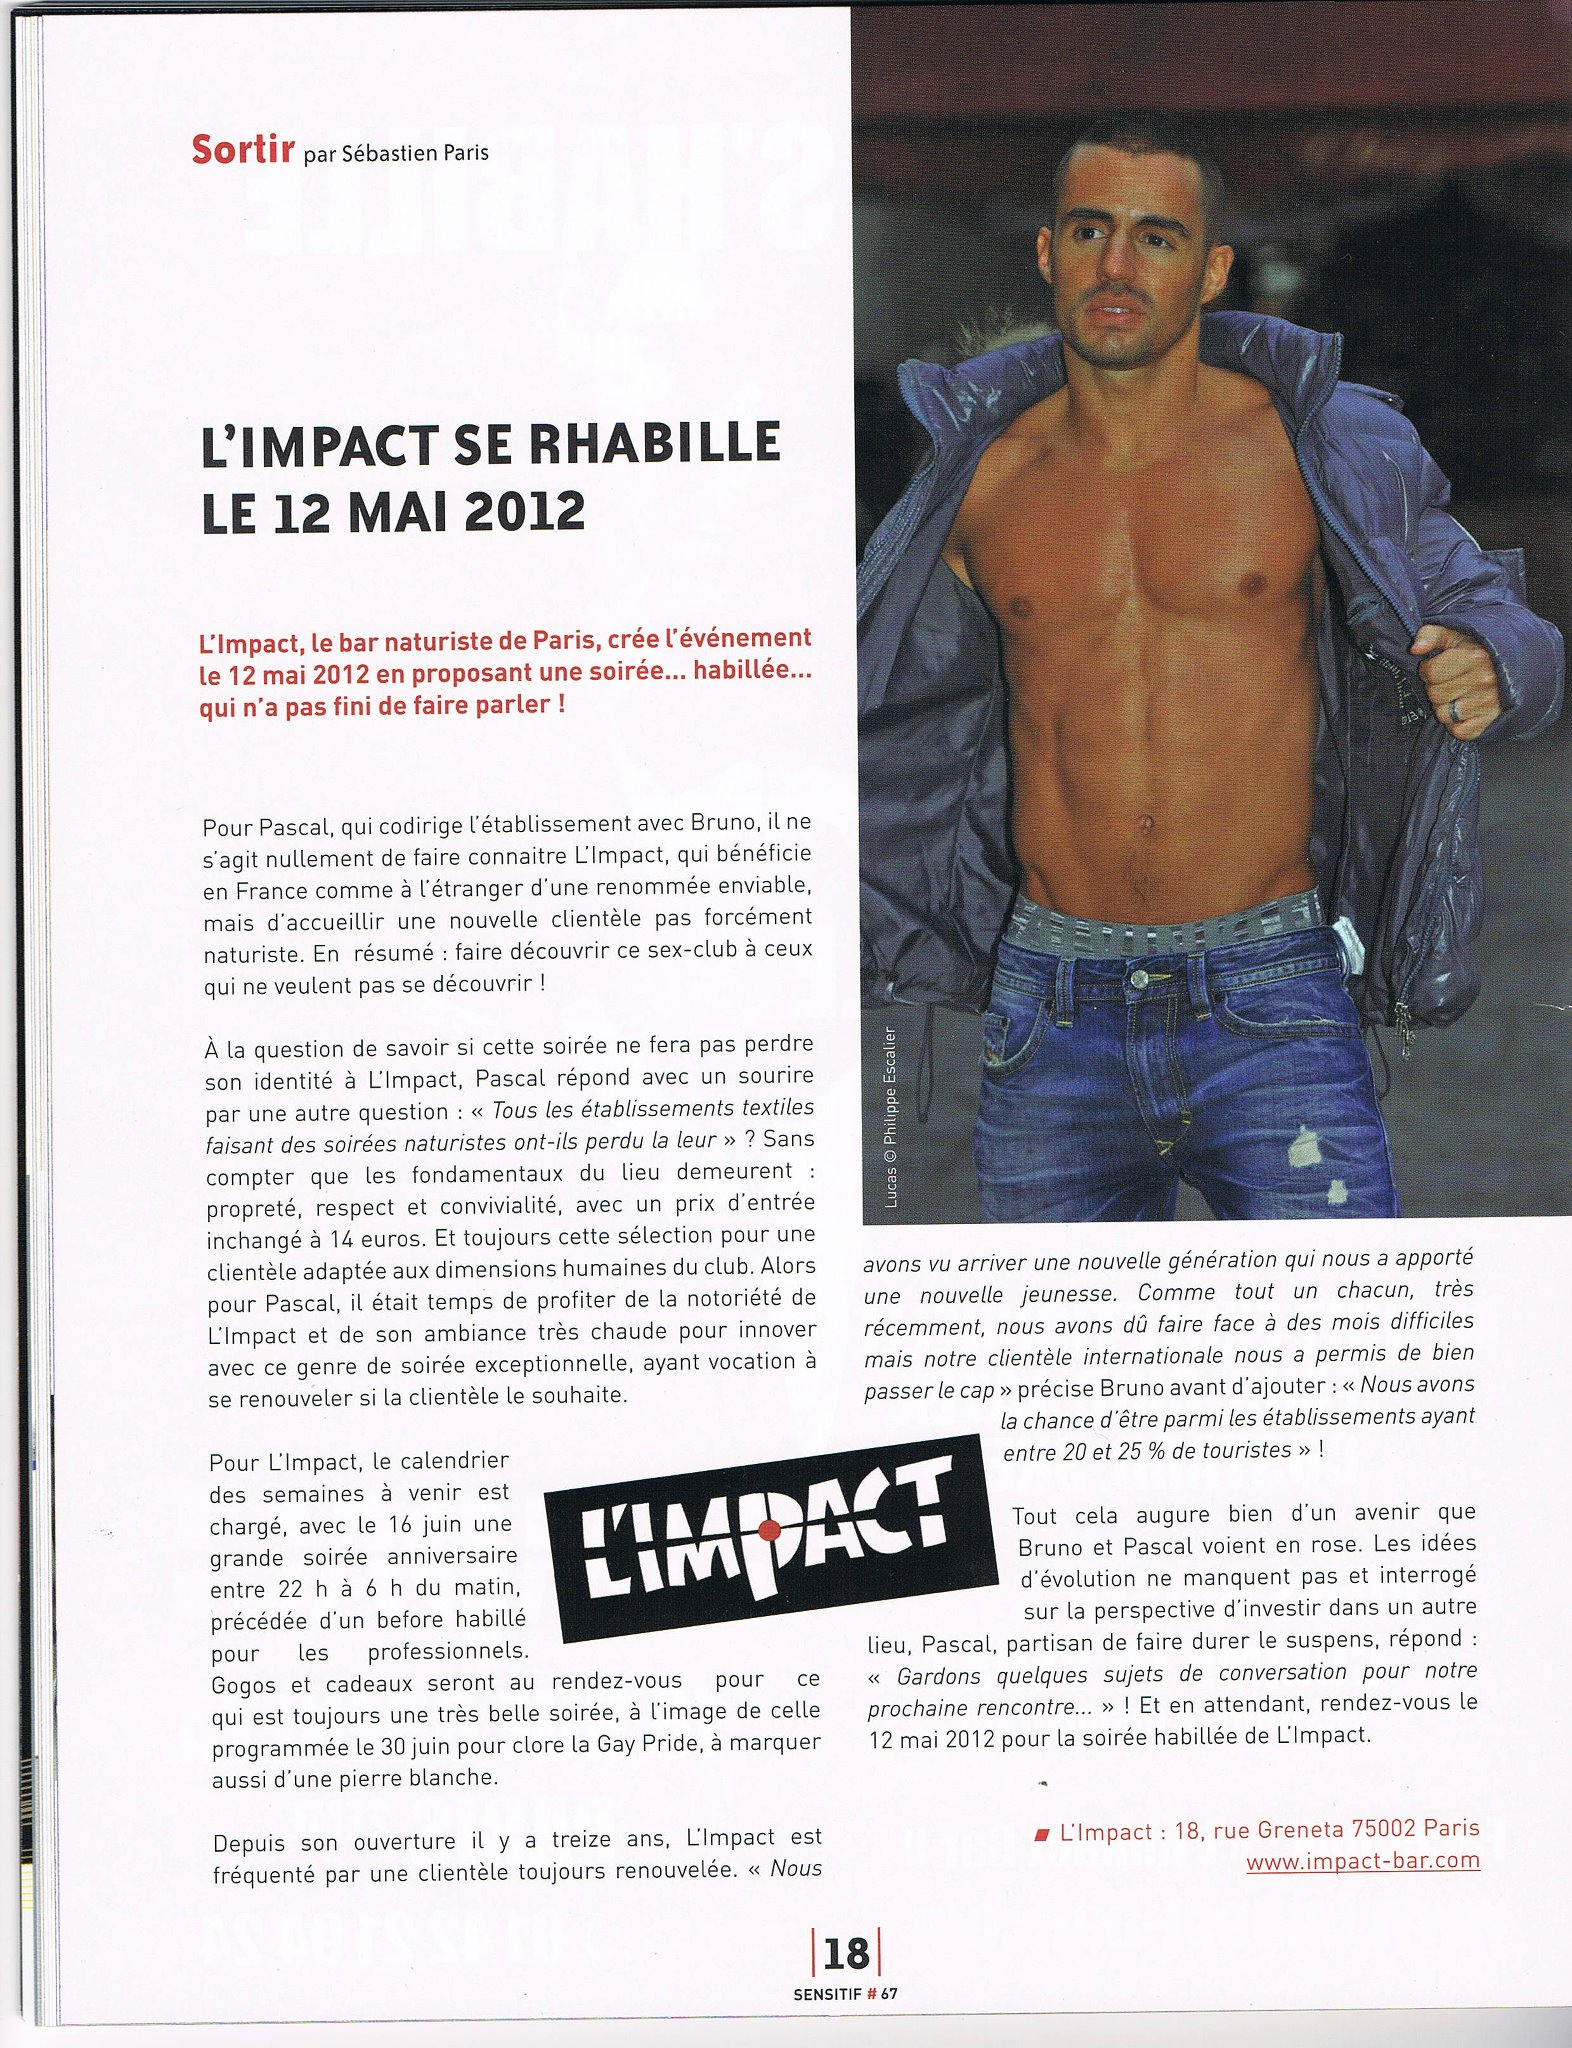 ARTICLE DE SENSITIF N°47 EN AVRIL 2012 A PROPOS DE L'IMPACT BAR ET LA SOIREE TEXTILE DU 12 MAI